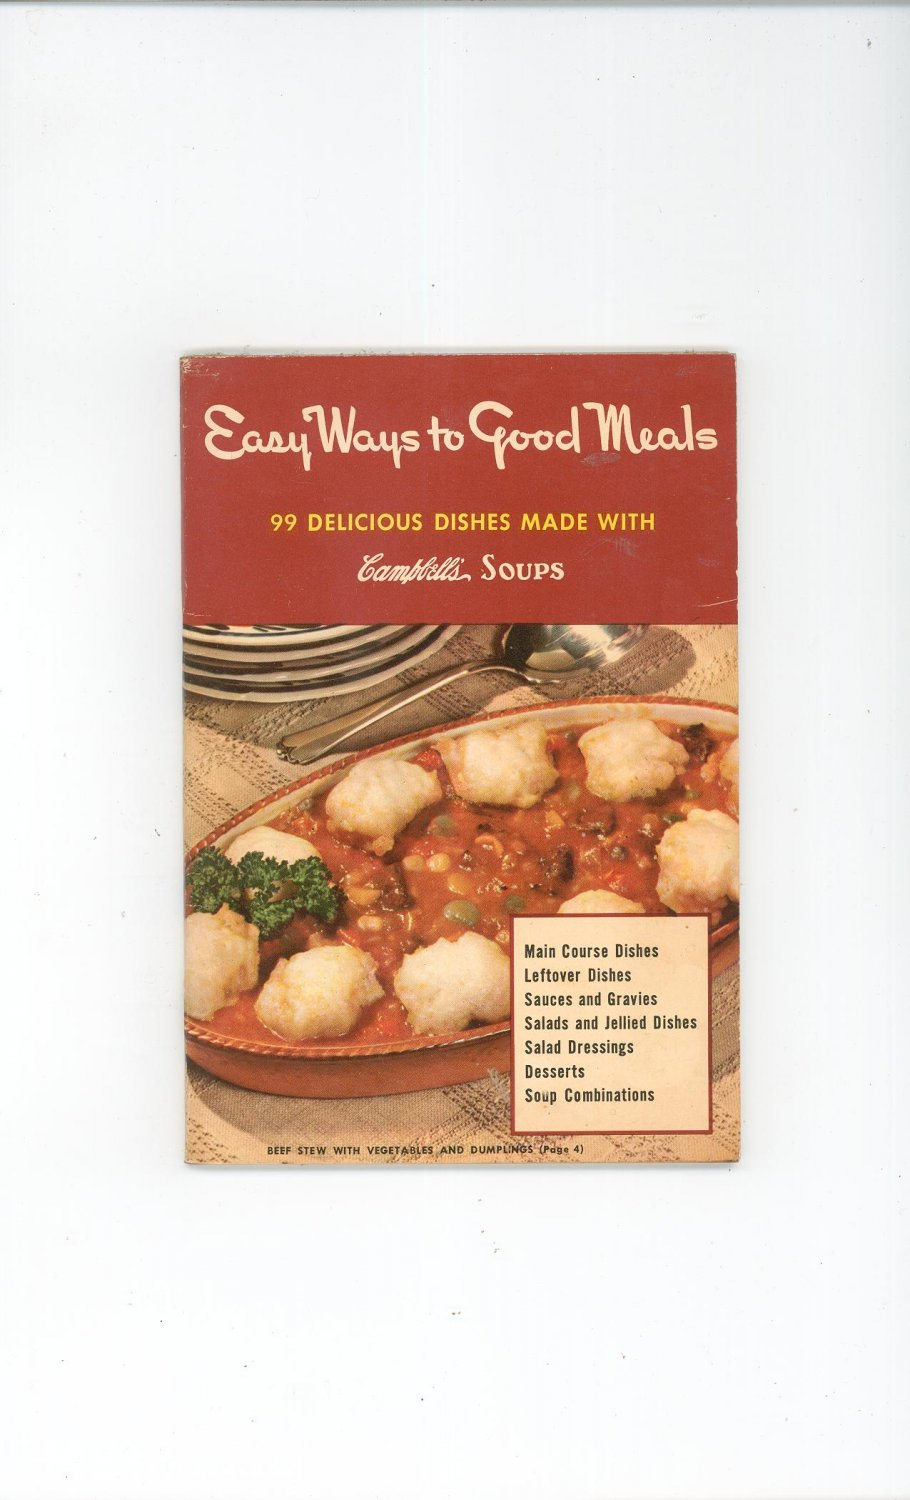 Vintage Easy Ways To Good Meals Cookbook by Campbell Soup 1949